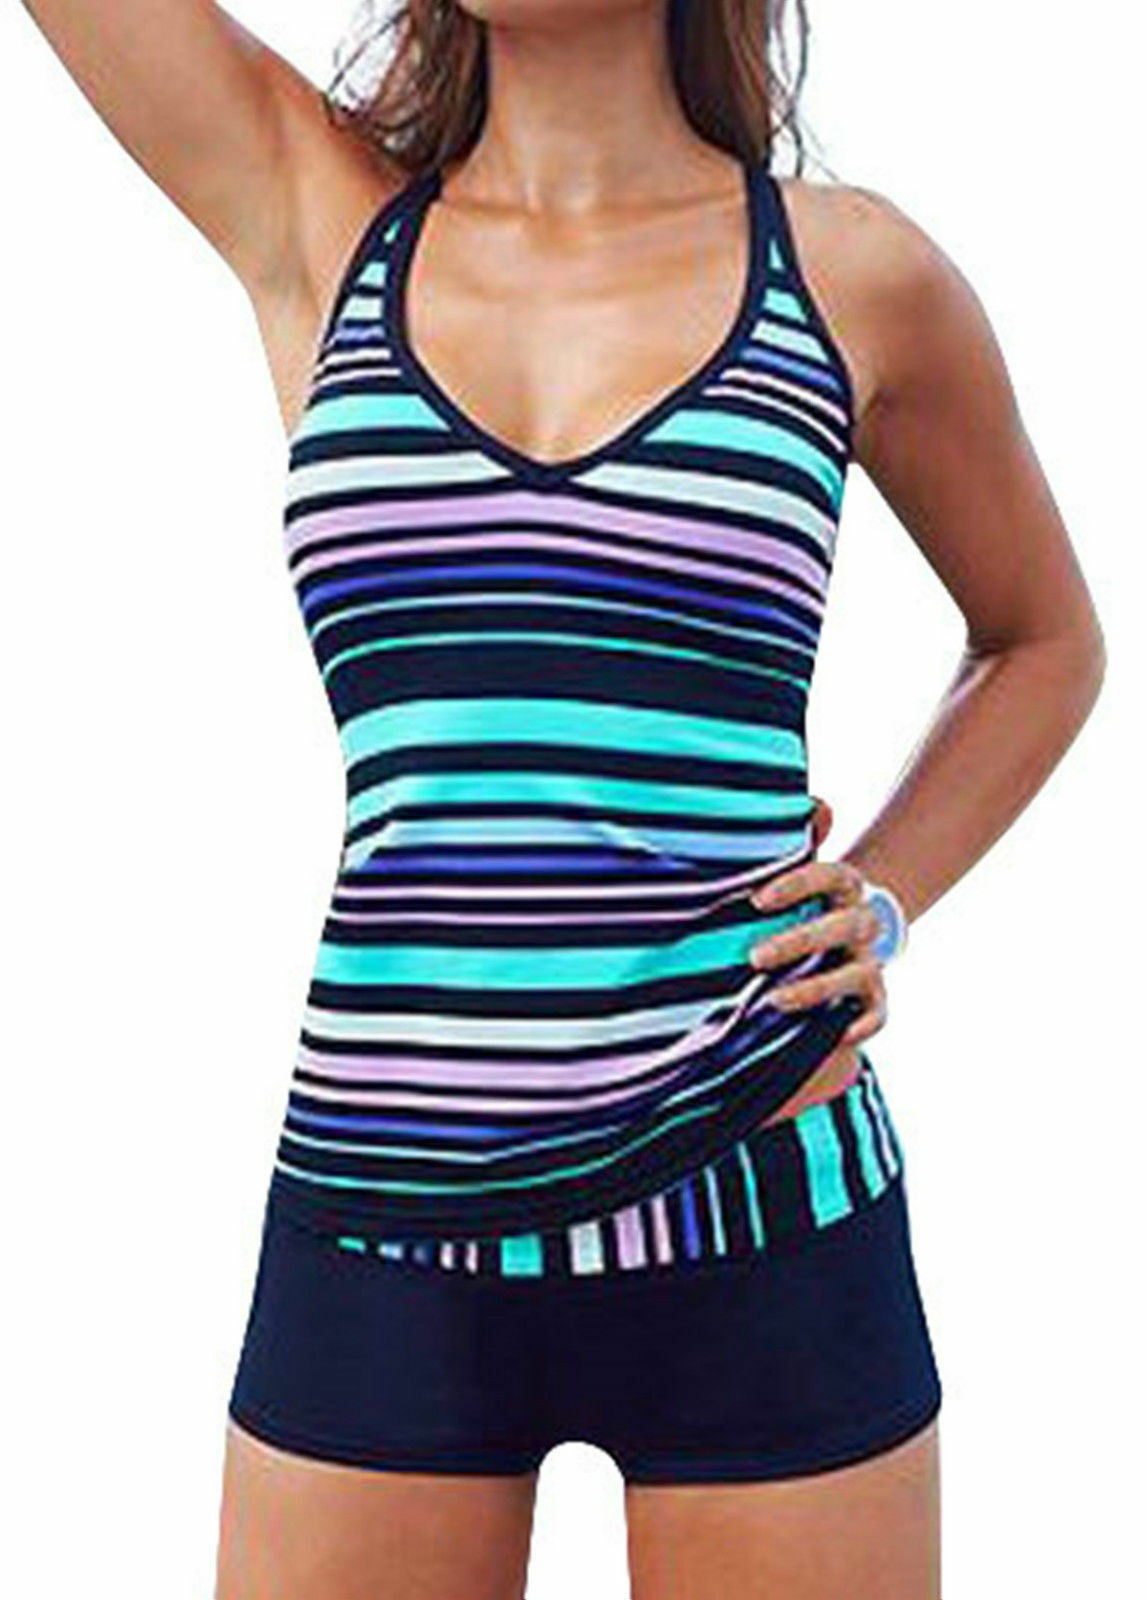 a00a0690fb10a Details about Women Sporty Tankini Sets With Boy Shorts Swimwear Two Piece  Swimsuit UK 6-20